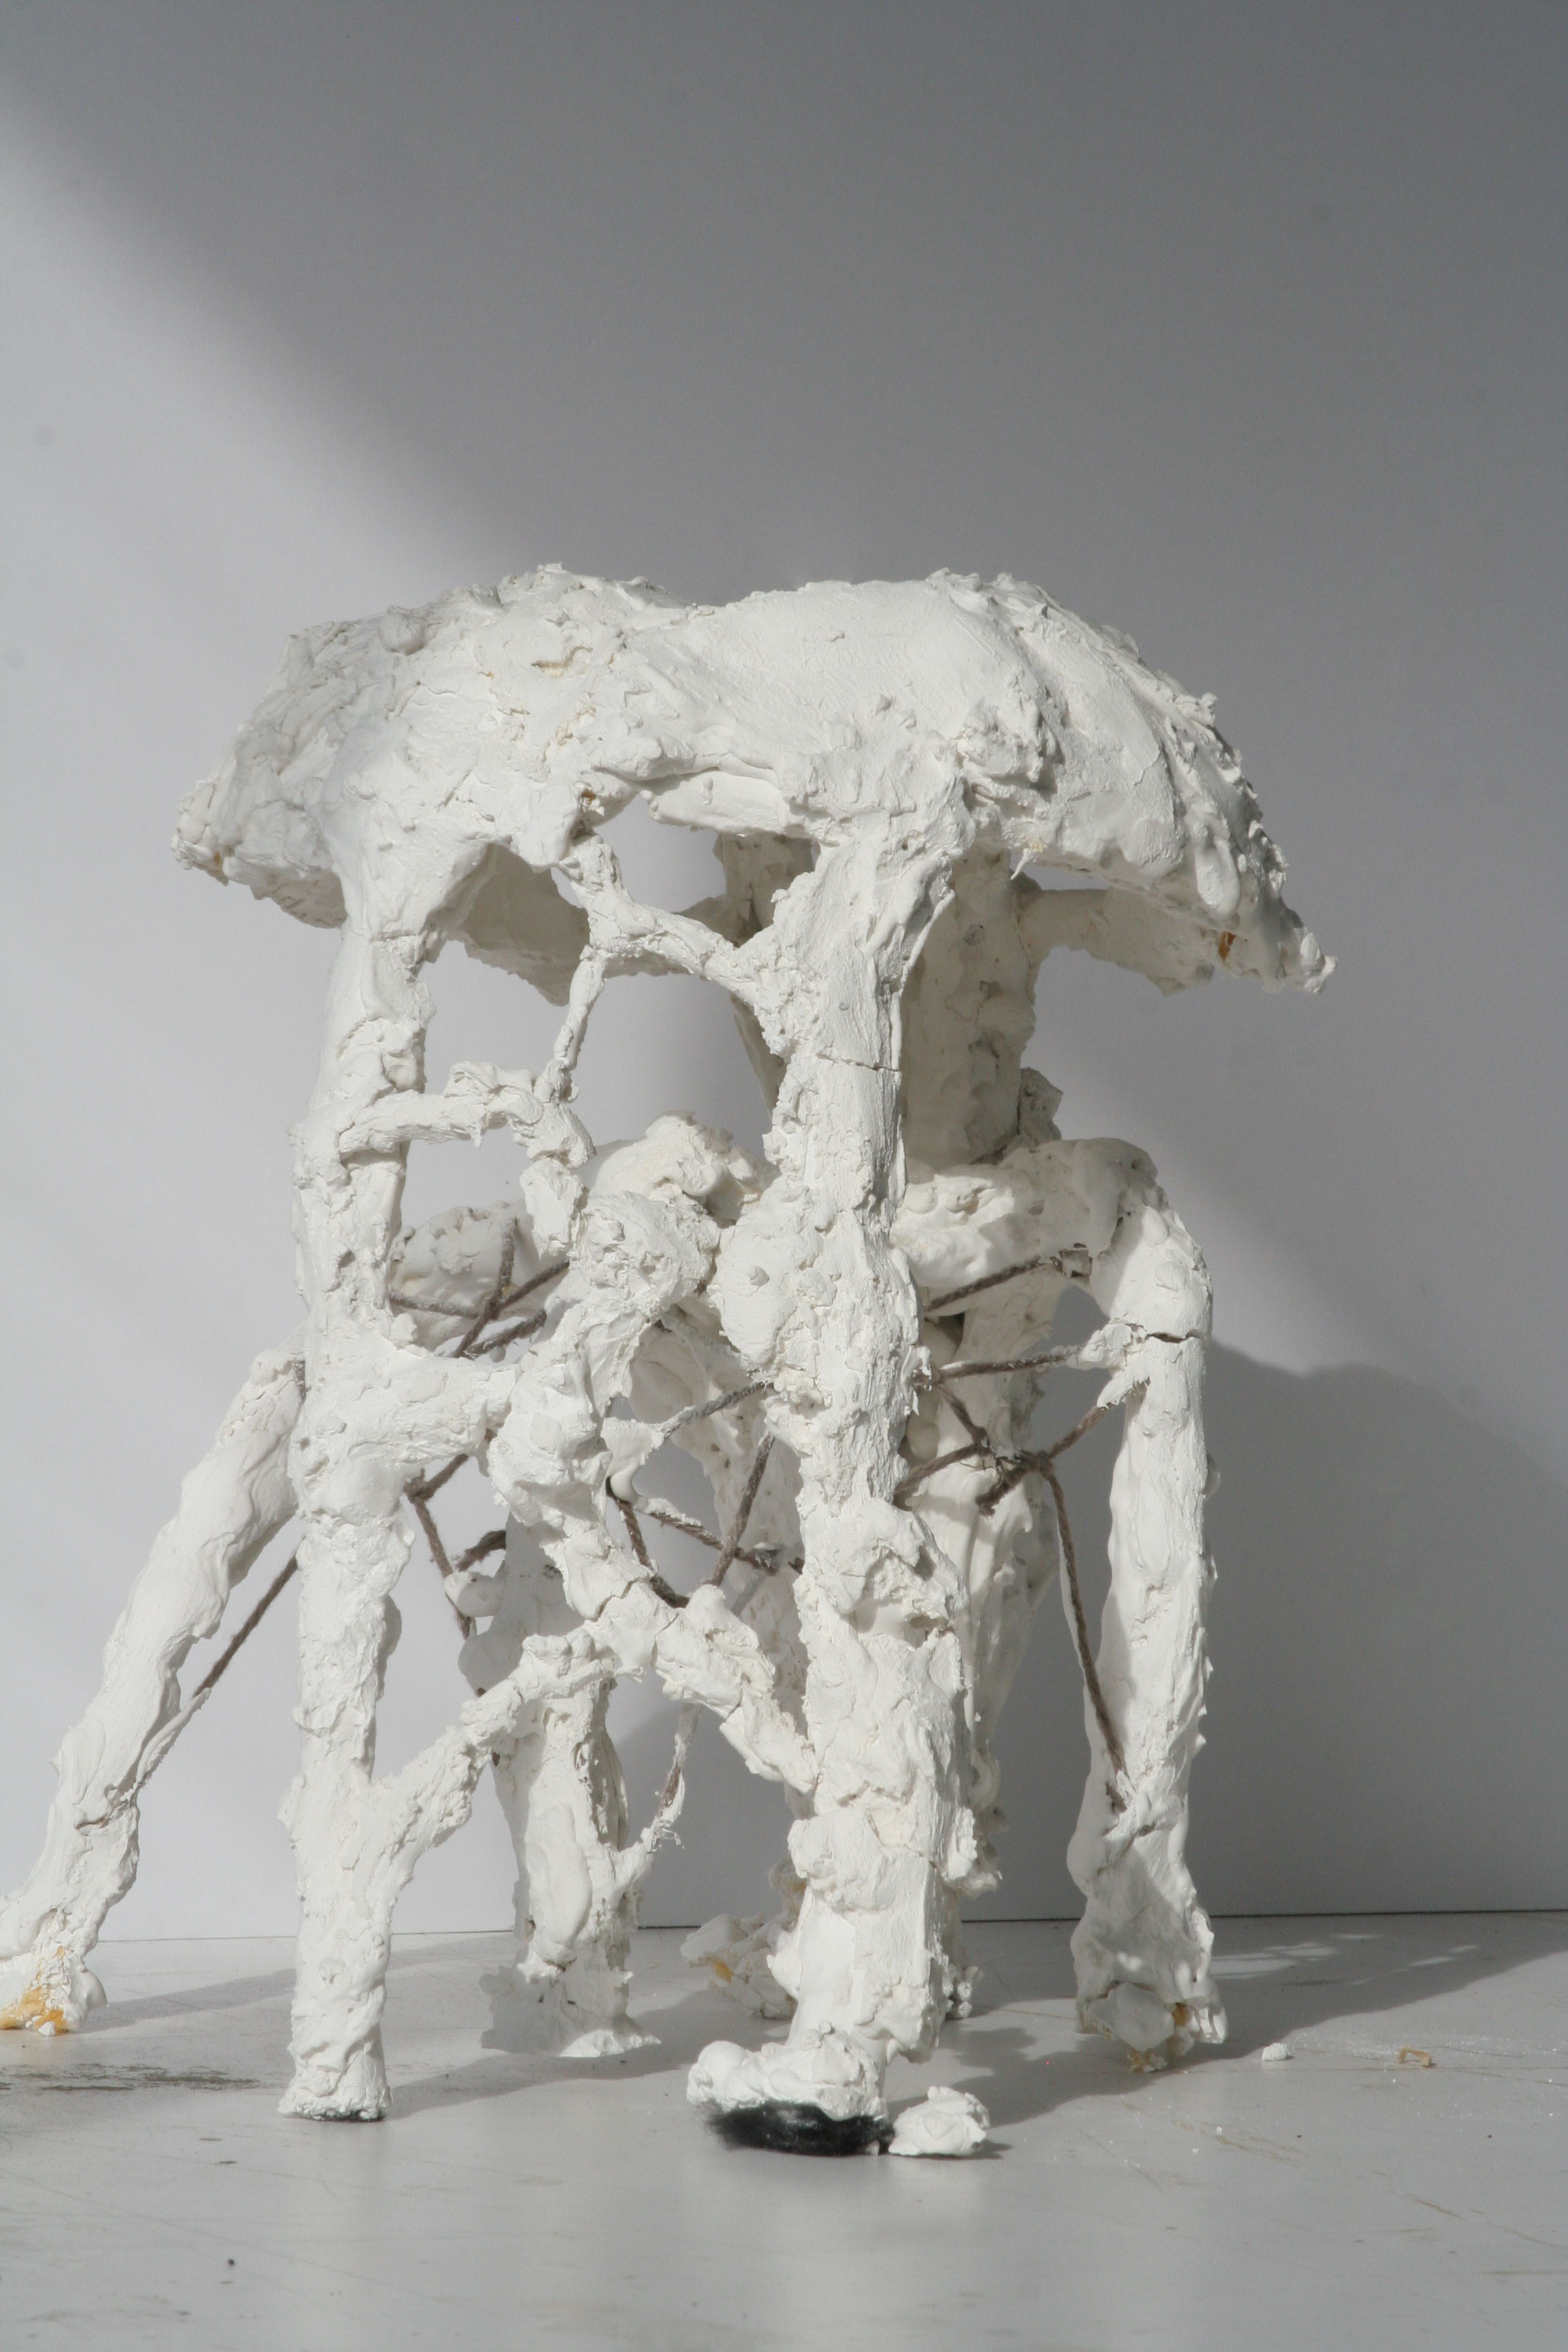 Concept model of observatory, created with braided yarn, string and plaster.  The materials planned for actual construction would be braided steel and concrete.